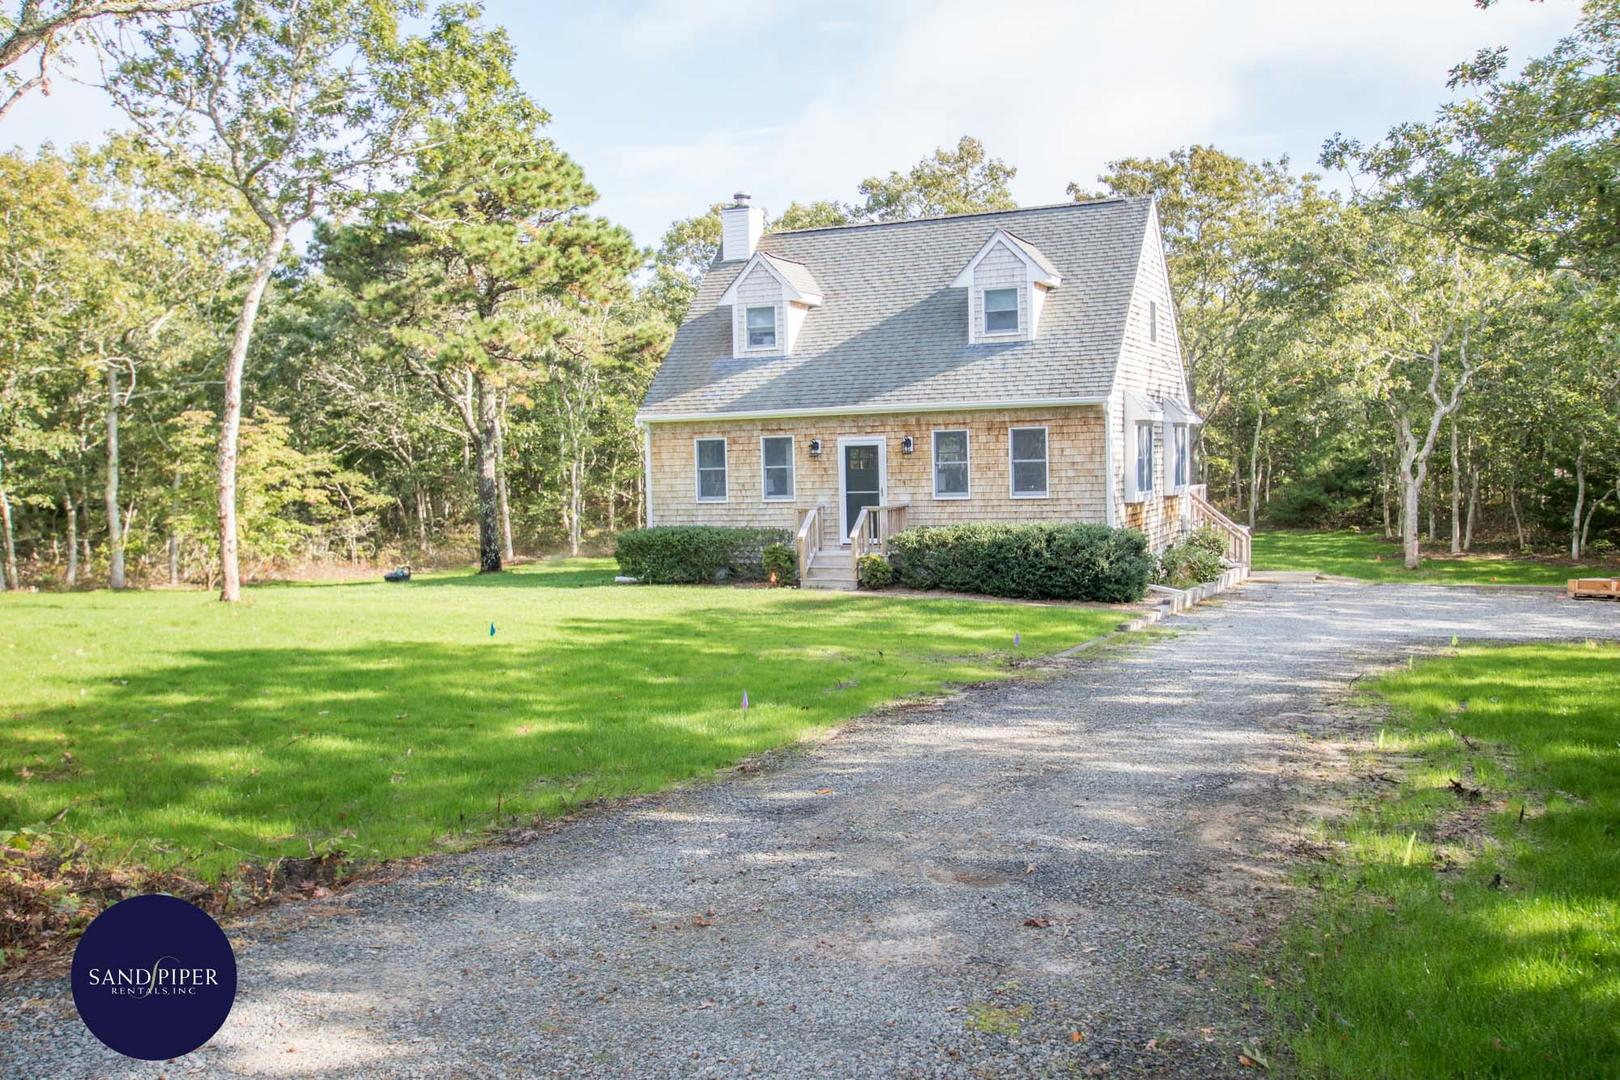 Vacation Home for Rent in Marthas Vineyard with 3 bedrooms near downtown Edgartown